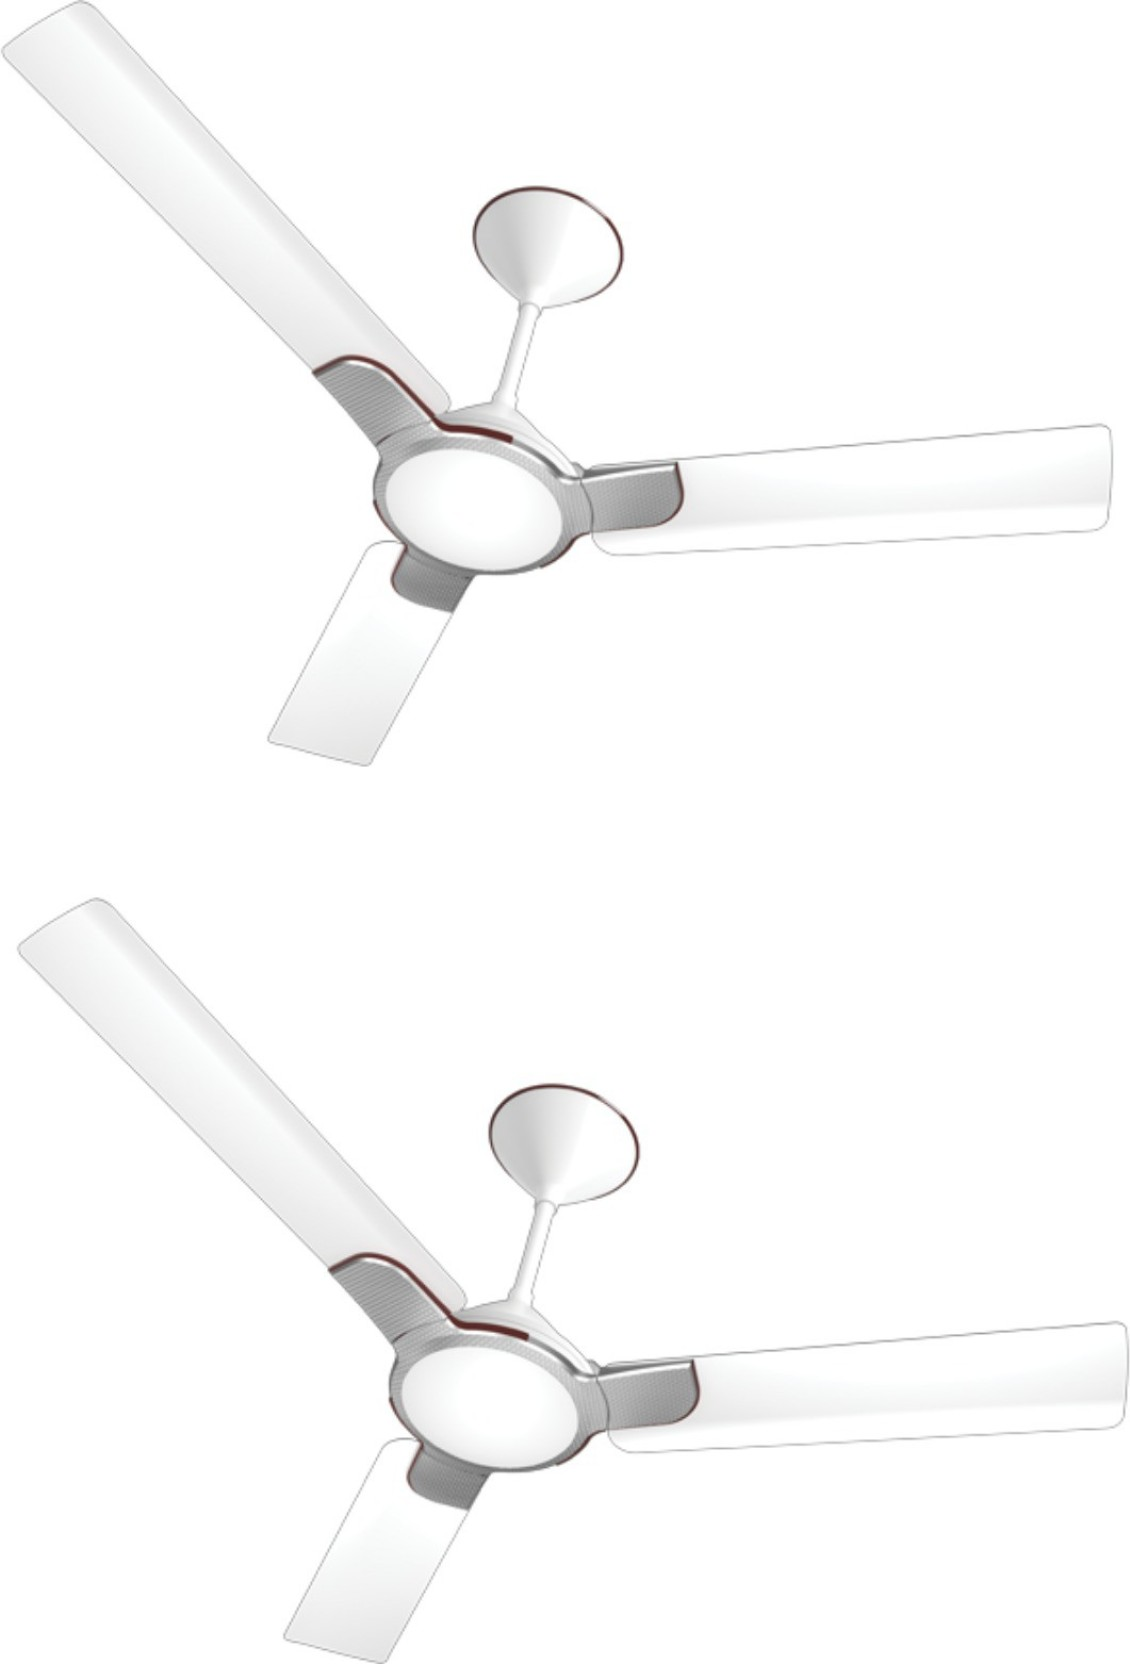 Havells Standard Aaria 3 Blade Ceiling Fan Price In India Buy Google On Wires And Wiring A Without Light Home